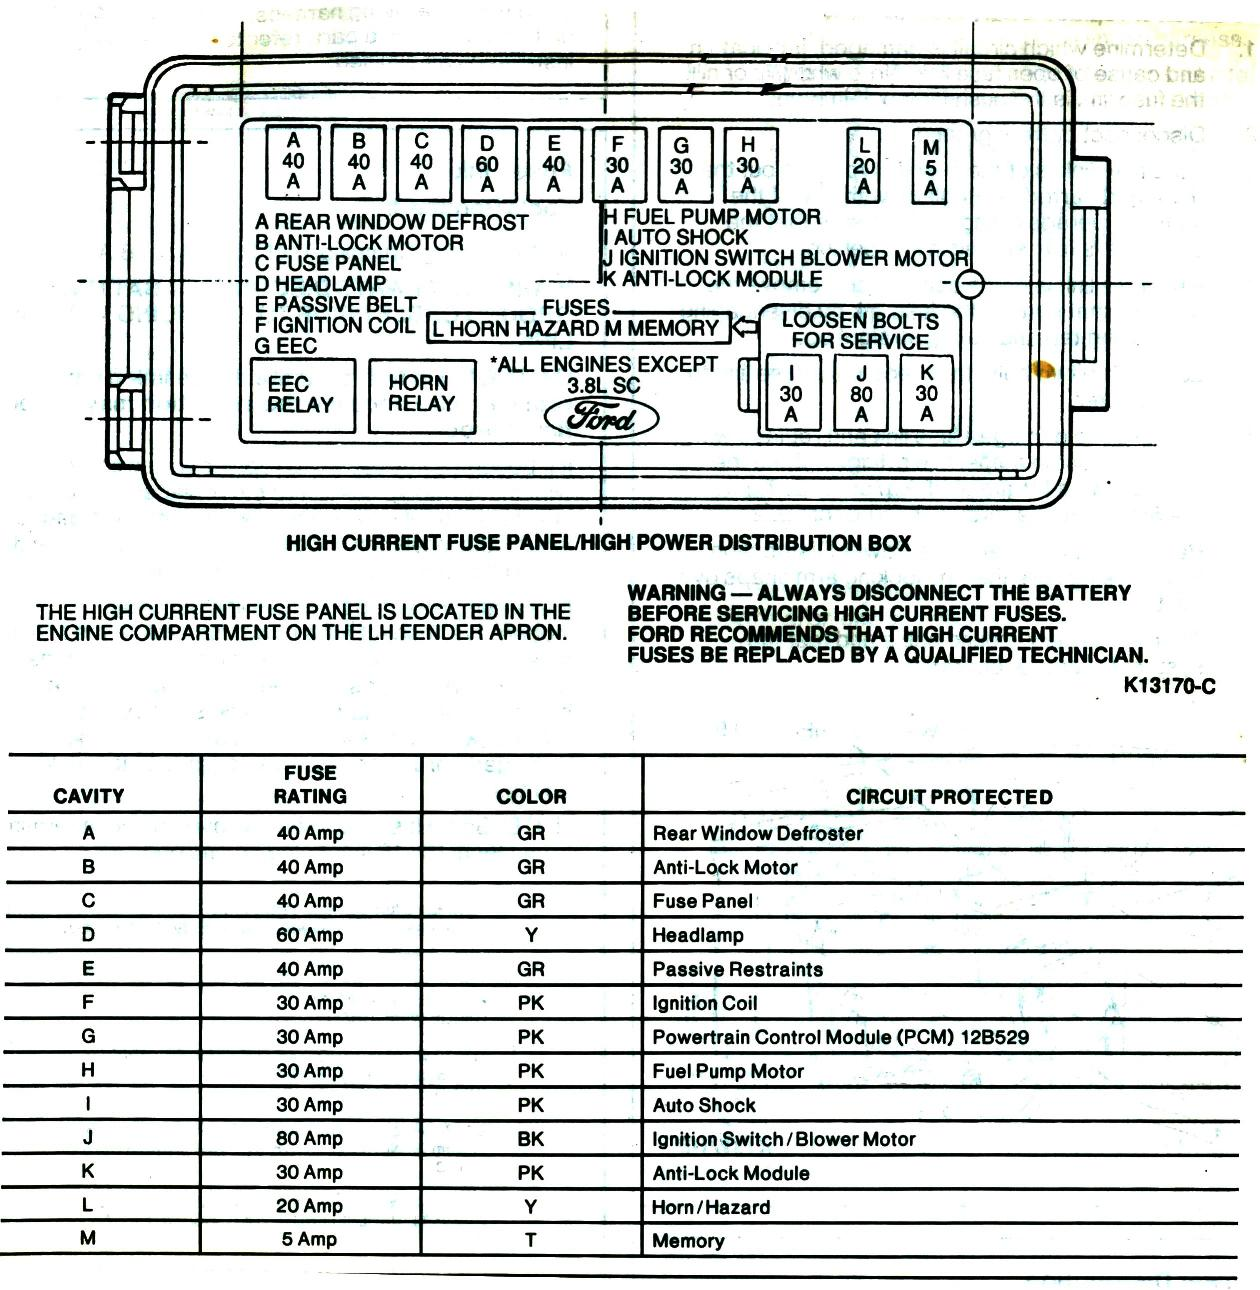 dist box under dash fuse box diagram? 04 ford taurus fuse box diagram at panicattacktreatment.co